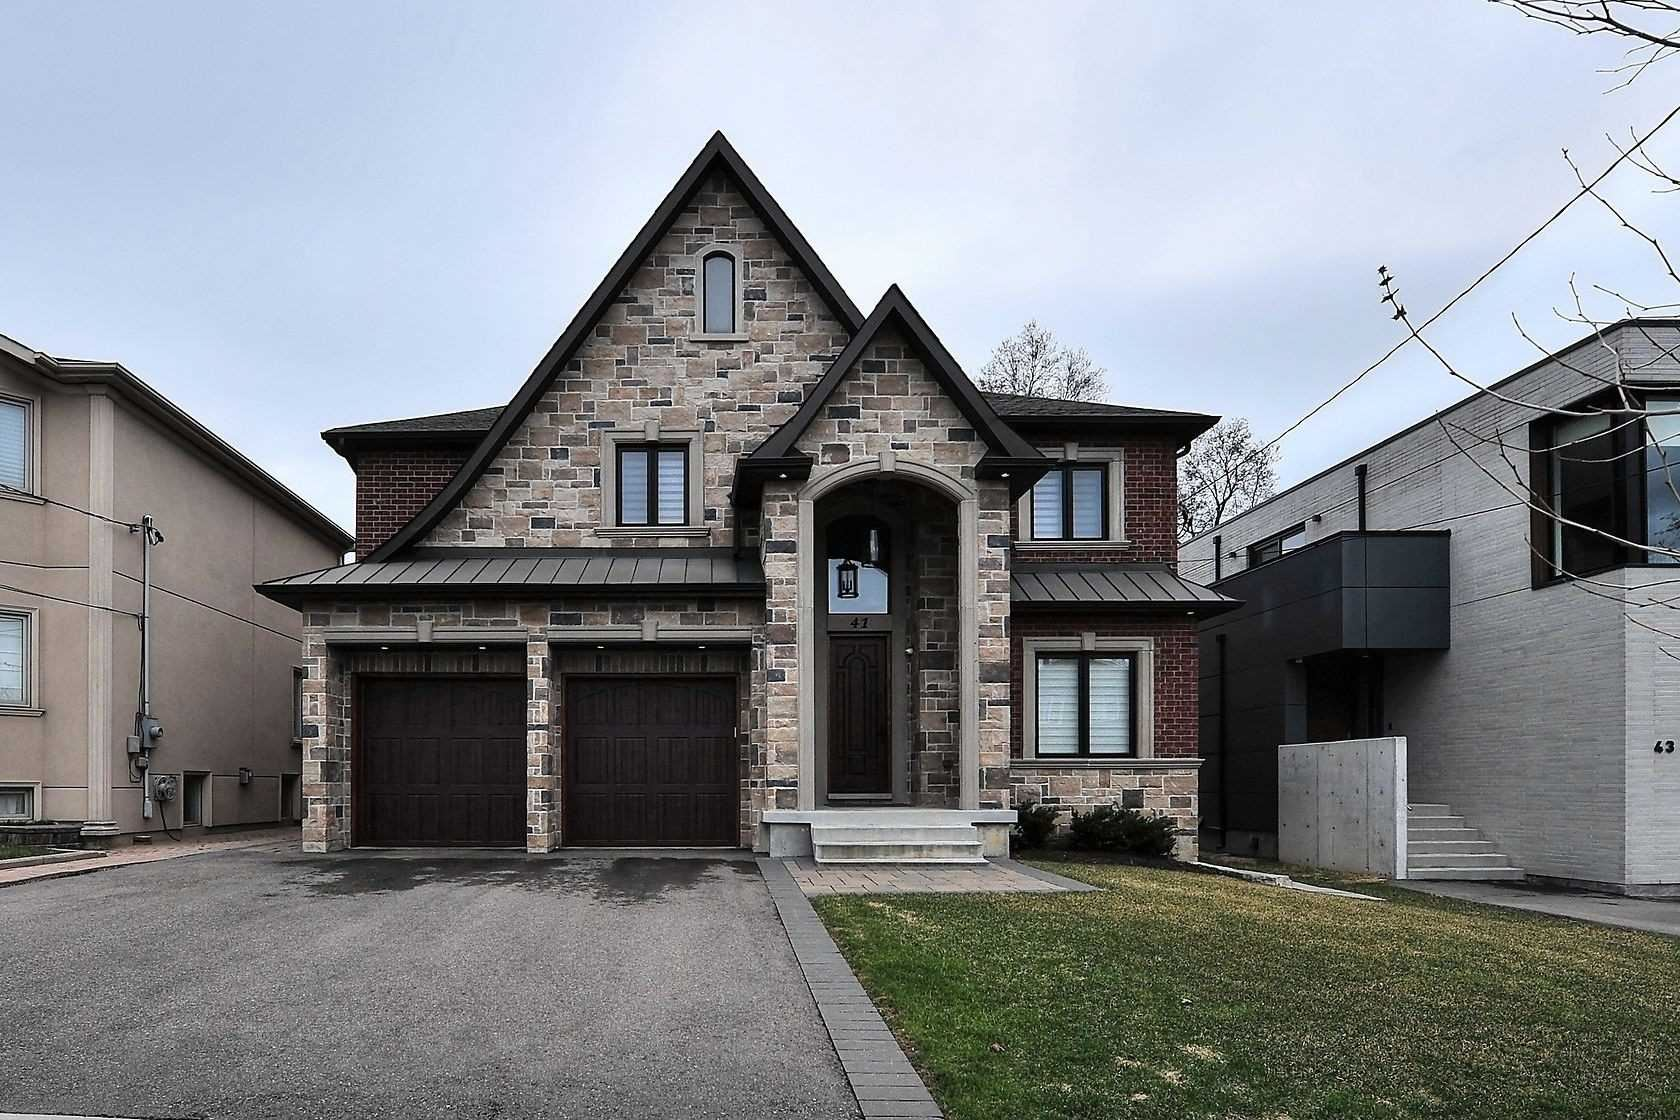 41 Grovedale Ave, Toronto, ON M6L1Y5 - MLS#: W5275703